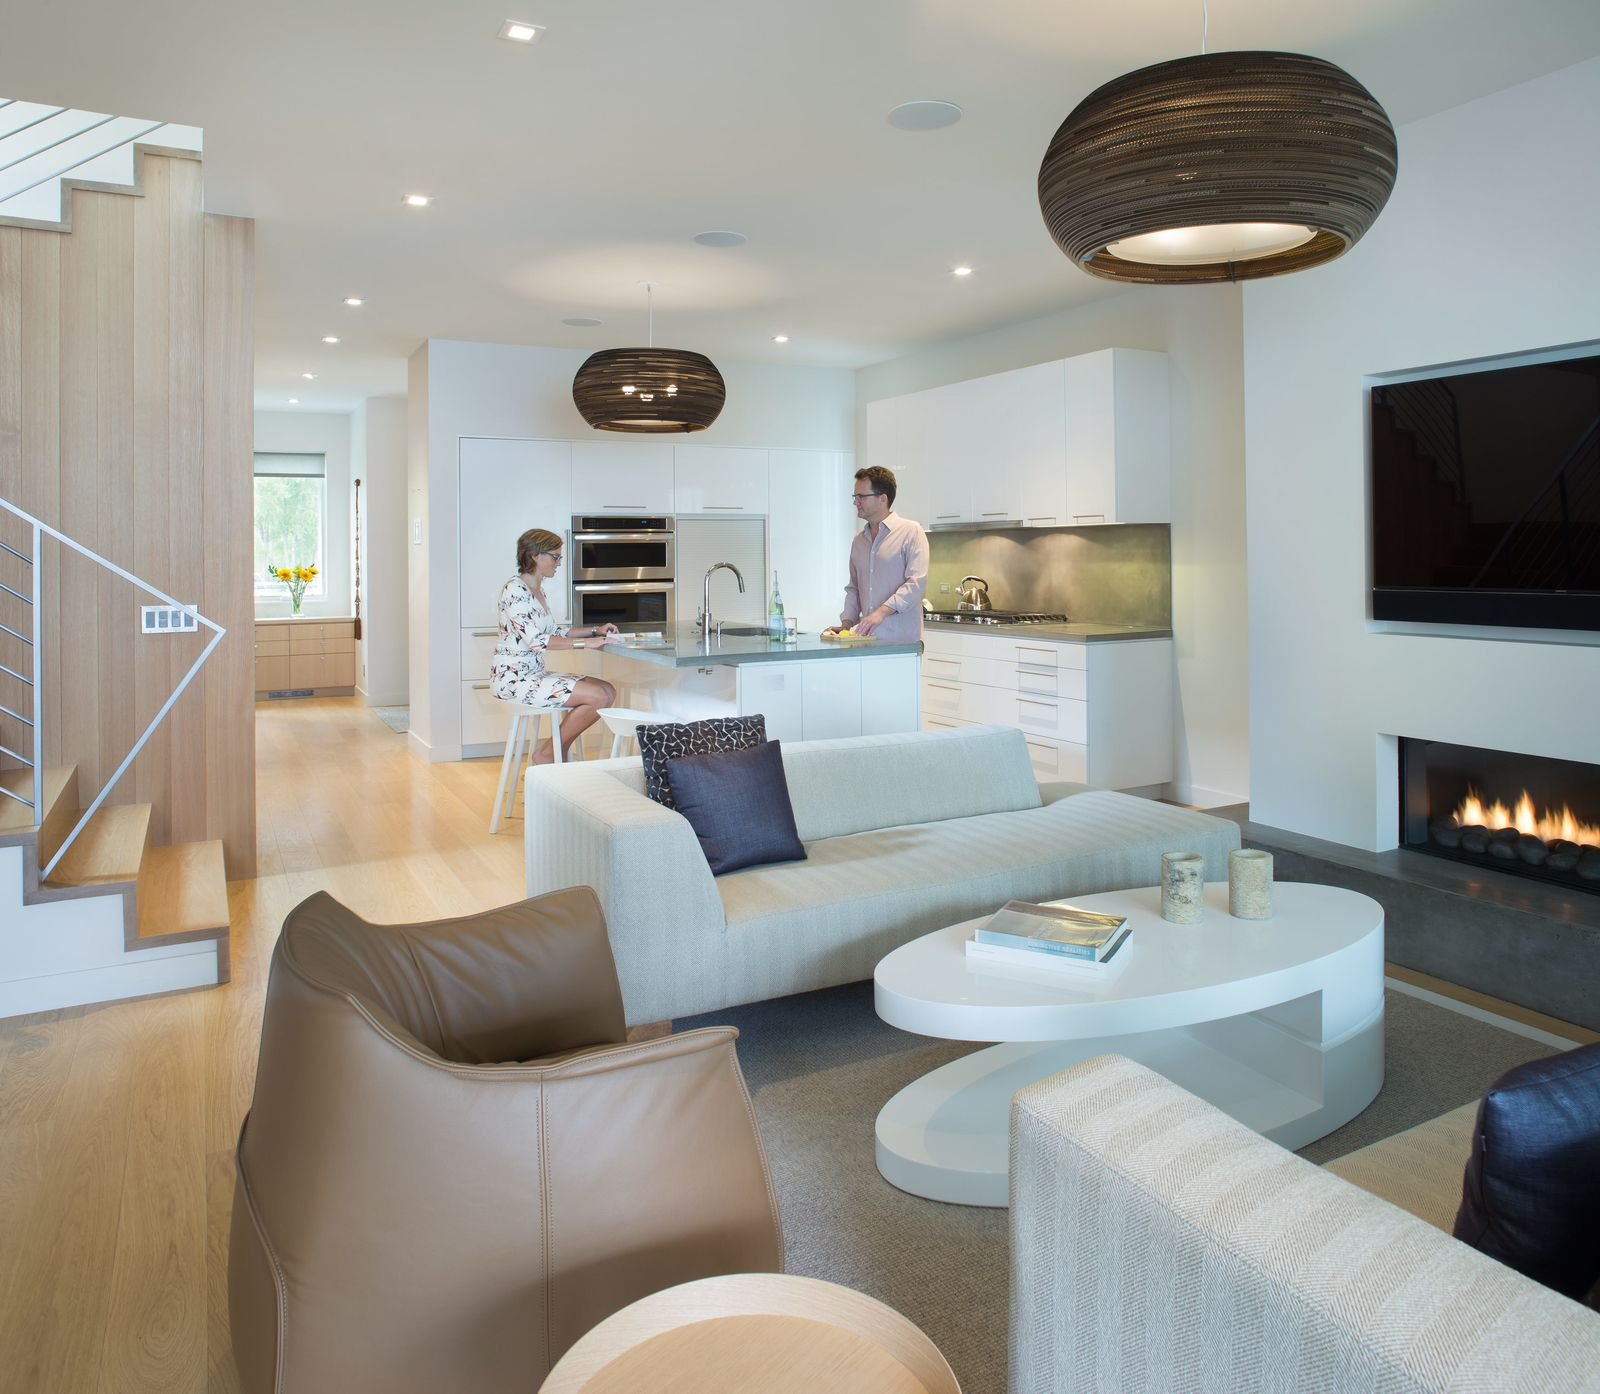 How One Aspen House Lives Up to LEED | Aspen, Smart technologies and ...